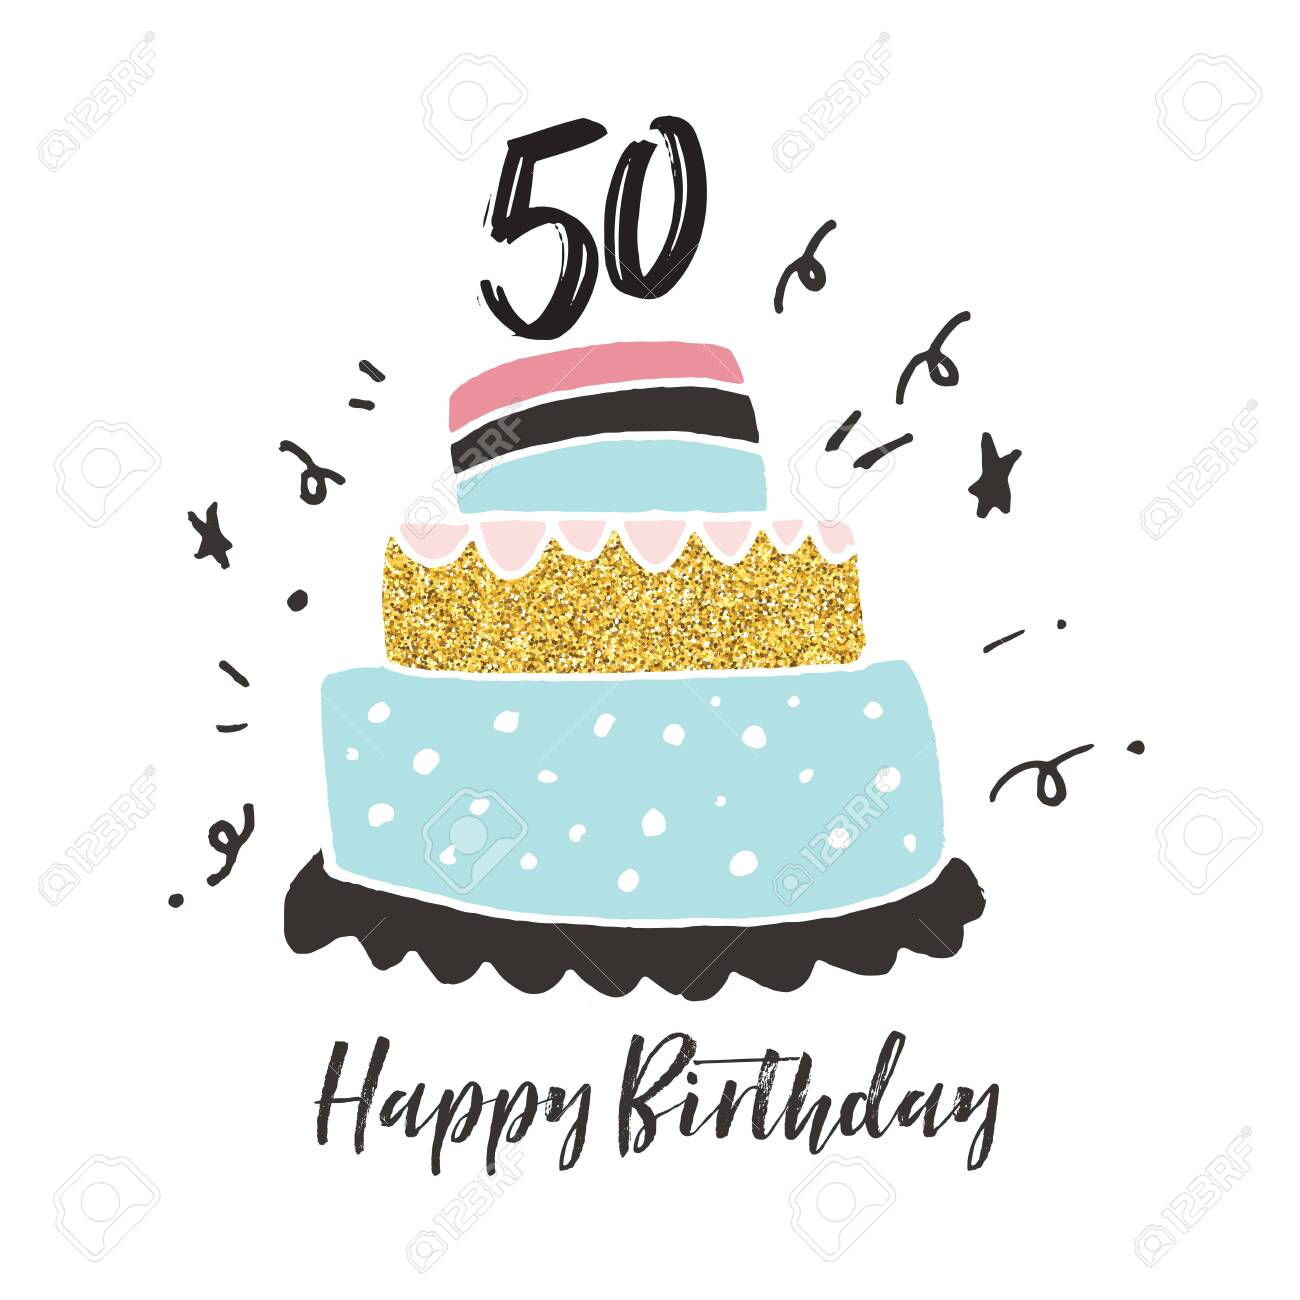 Stupendous 50Th Birthday Hand Drawn Cake Birthday Card Stock Photo Picture Funny Birthday Cards Online Fluifree Goldxyz